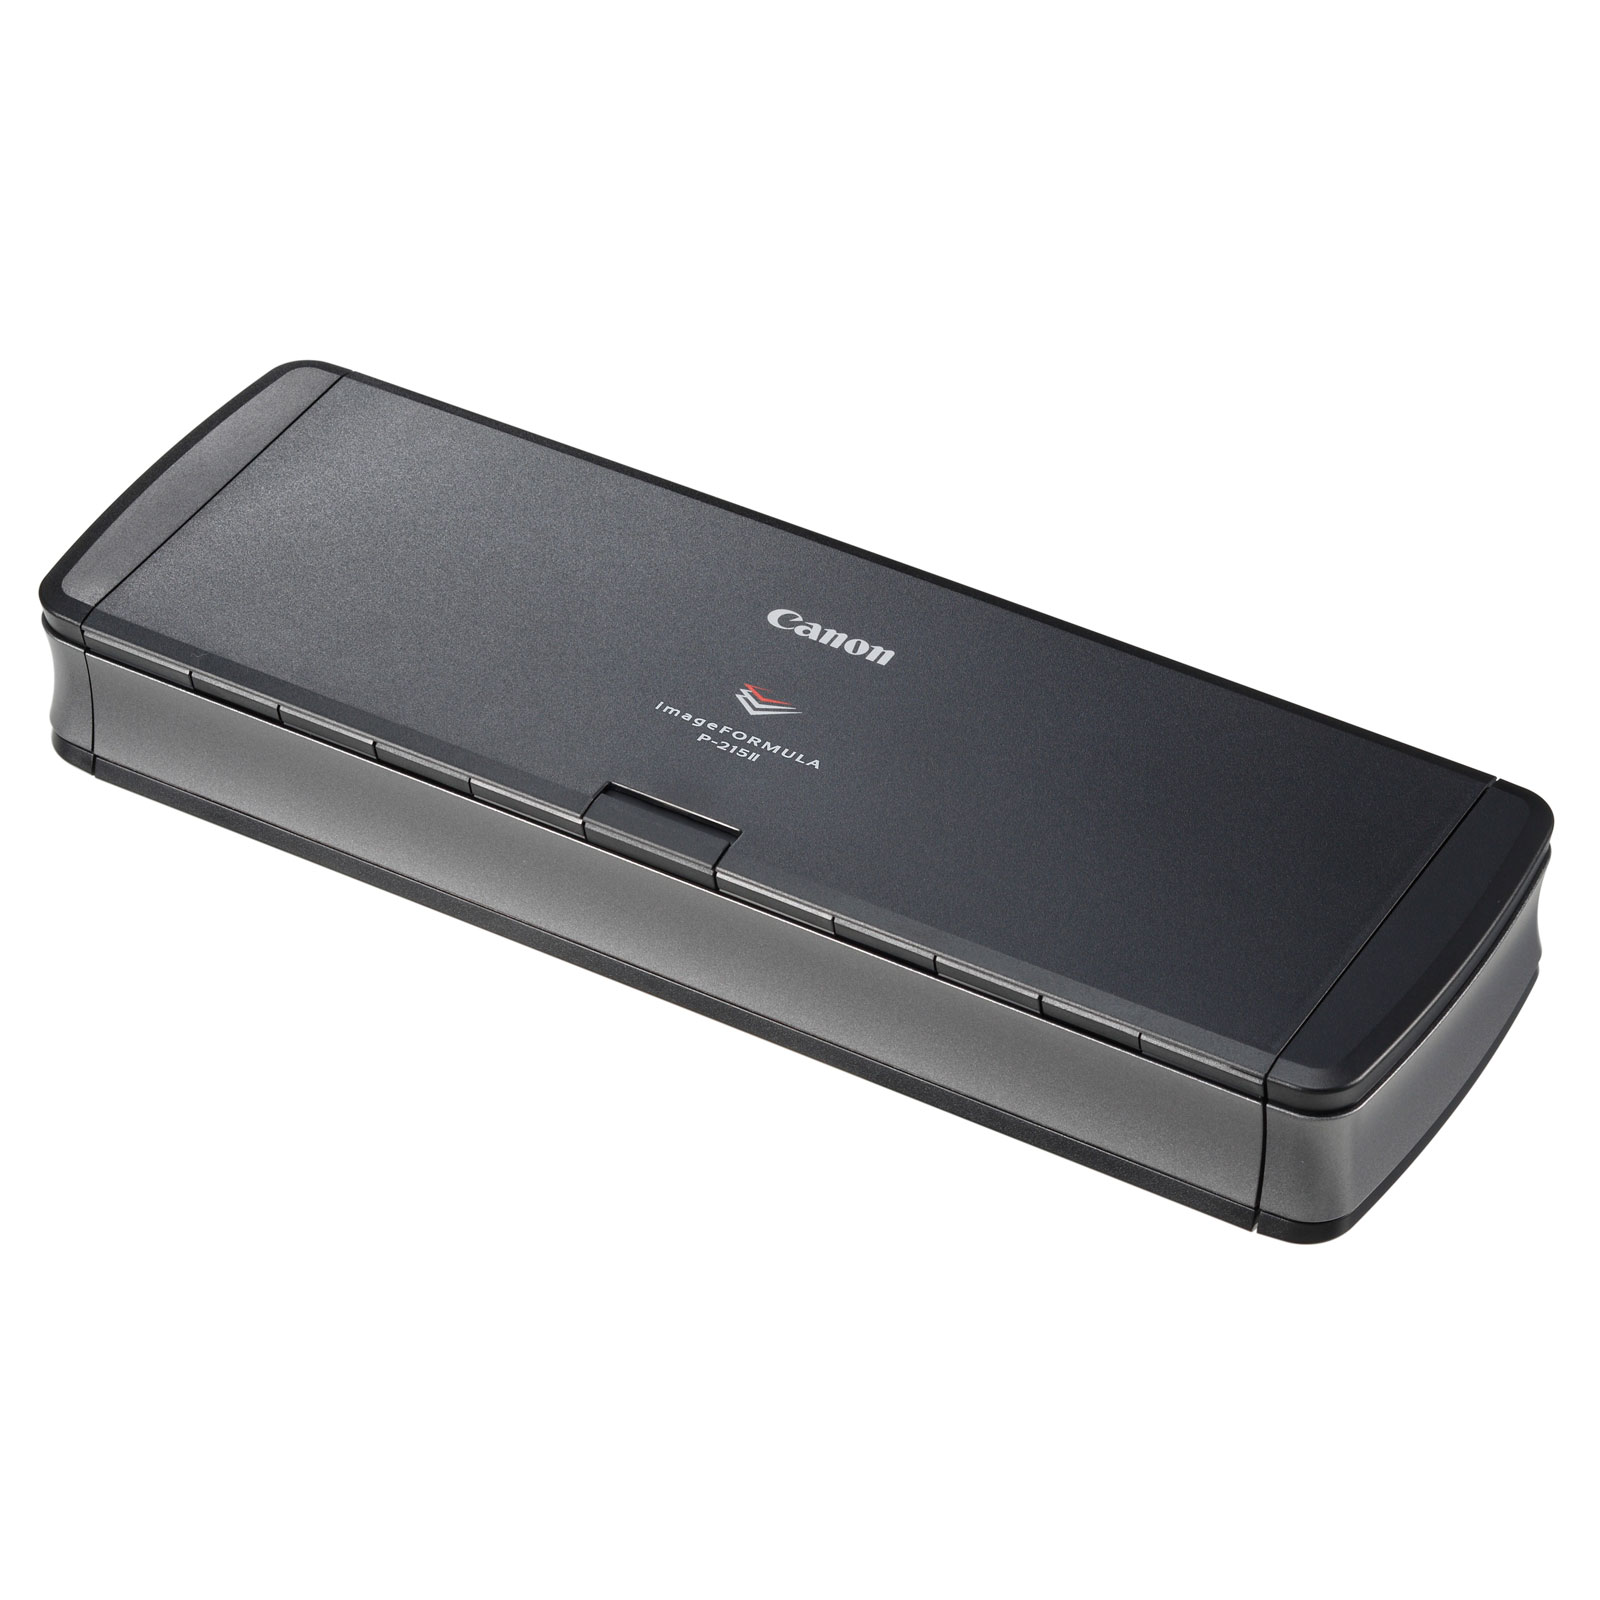 canon imageformula p 215ii scanner canon sur. Black Bedroom Furniture Sets. Home Design Ideas